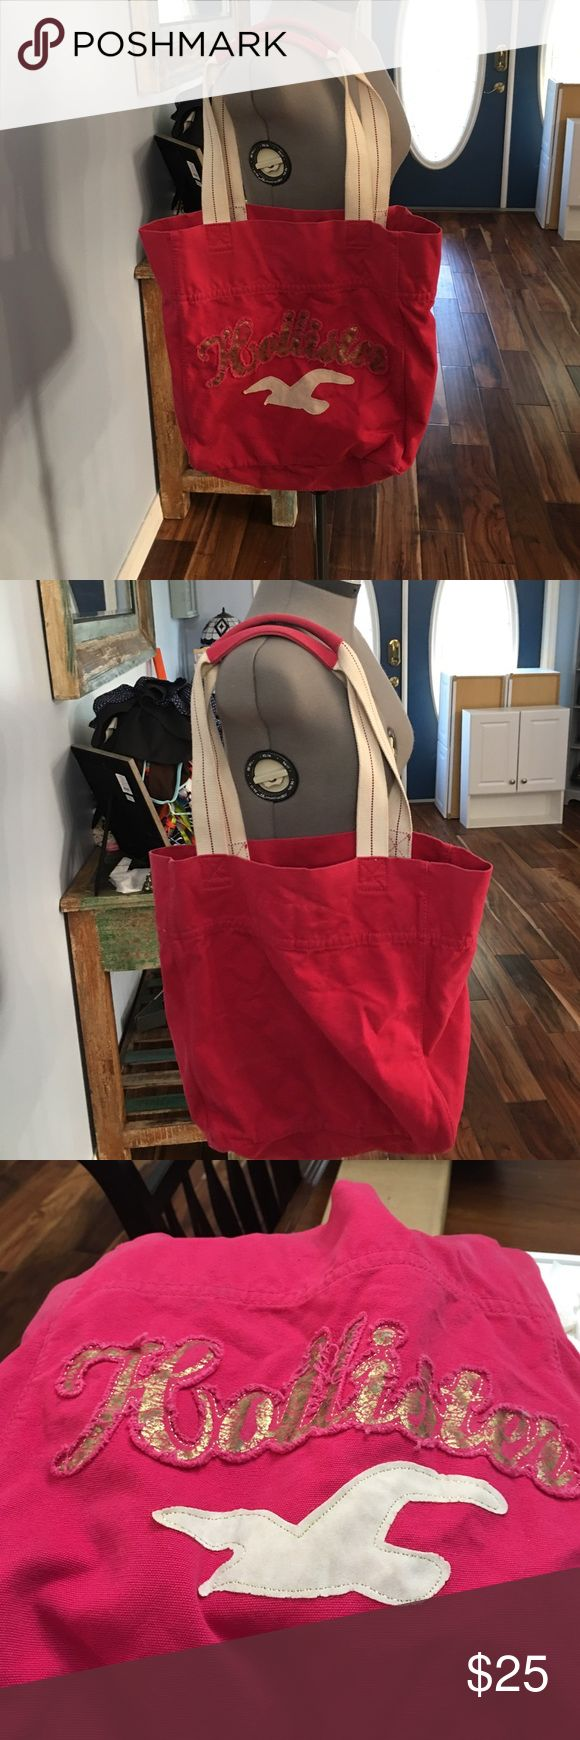 Hollister tote bag Great condition Hollister Bags Totes